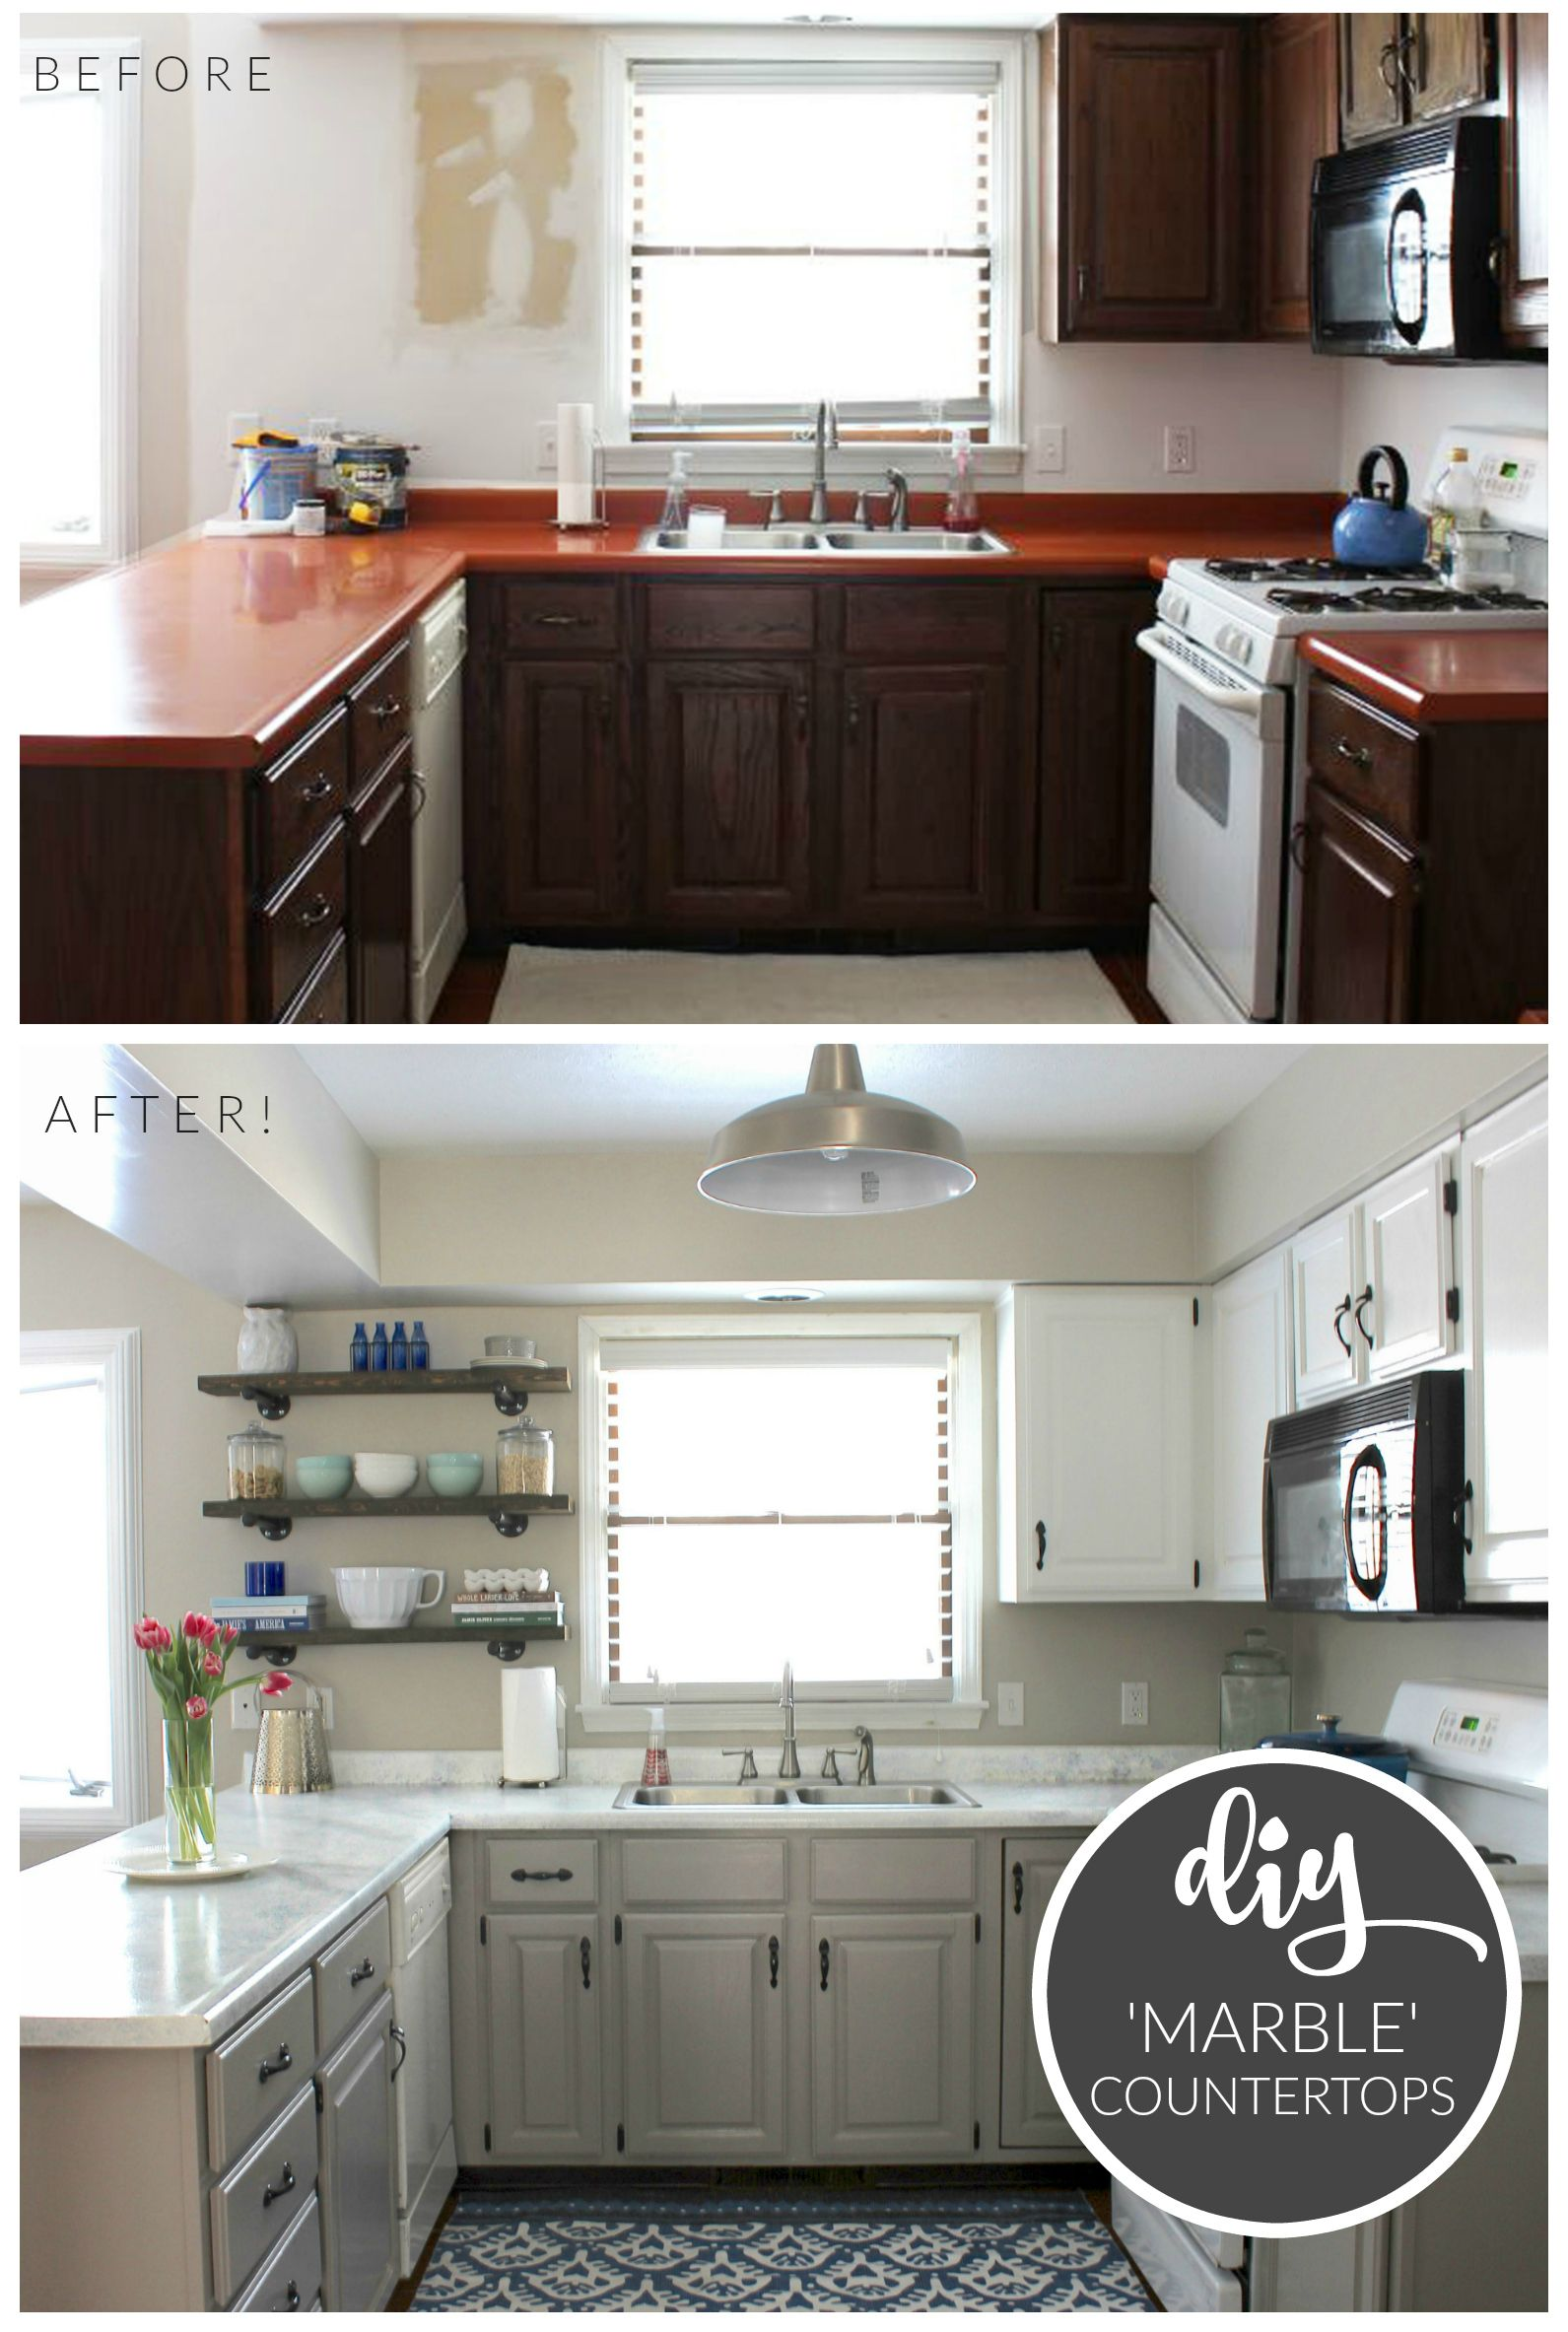 Budget Kitchen Makeover Diy Faux Marble Countertops Painted With The White Diamond Giani Countertop Paint Kit Creates Look Of Natural Stone For